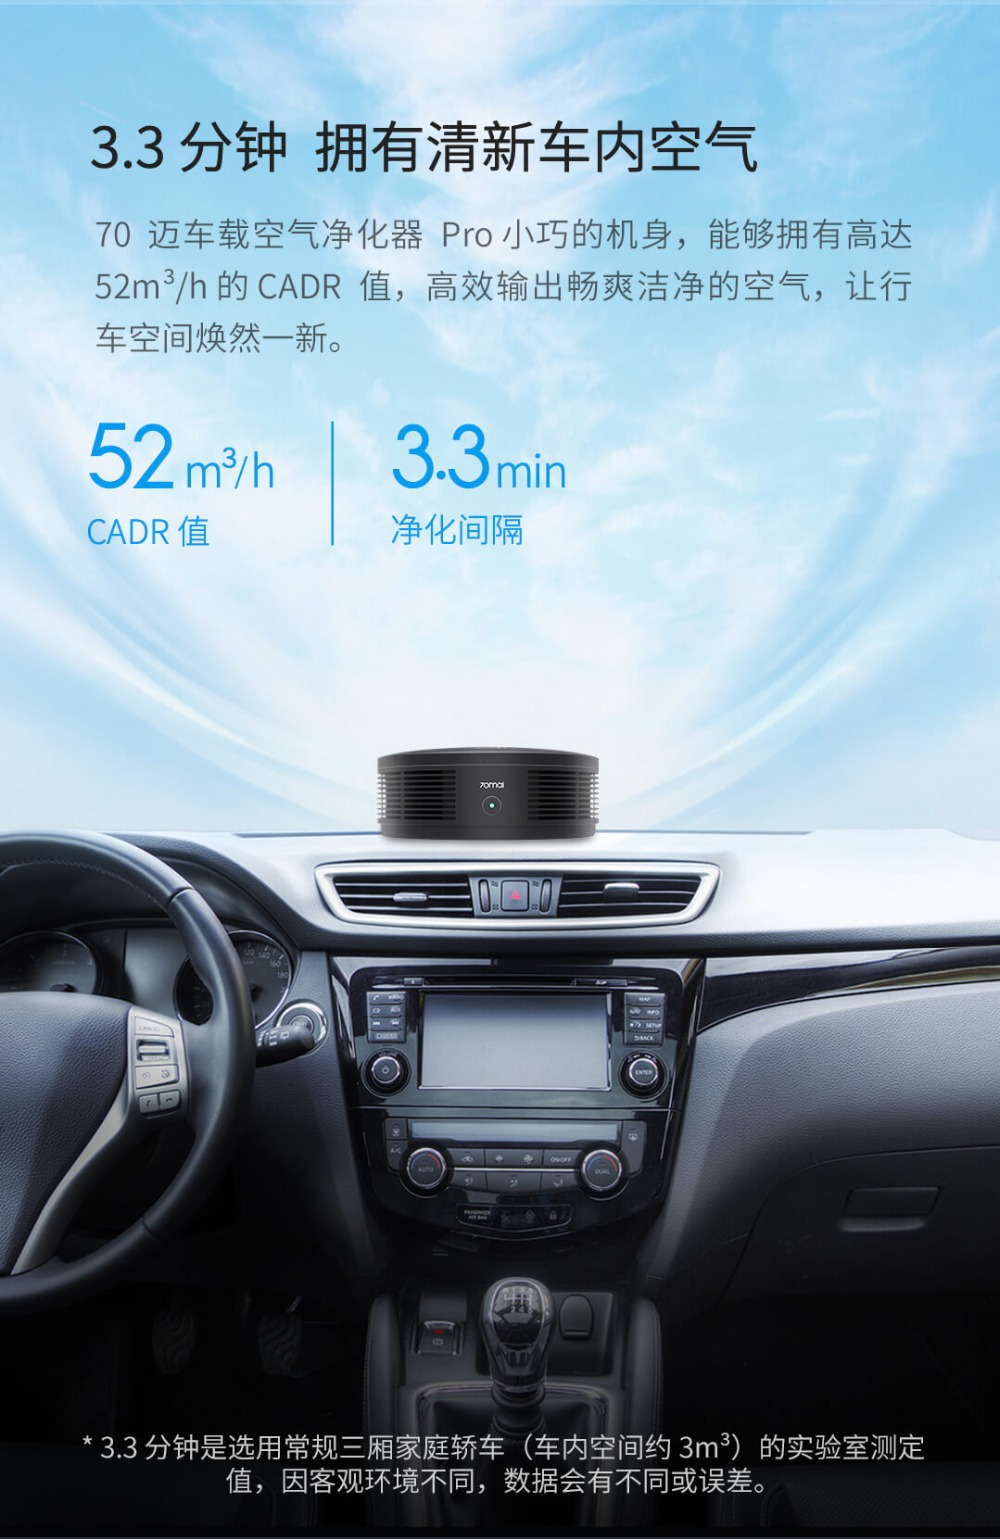 Xiaomi 70mai Air Purifier Pro Air Cleaner Mute Filter Phone Smart Control Remove PM2.5 Smoke Odor Dust Formaldehyde for Home,Car (6)